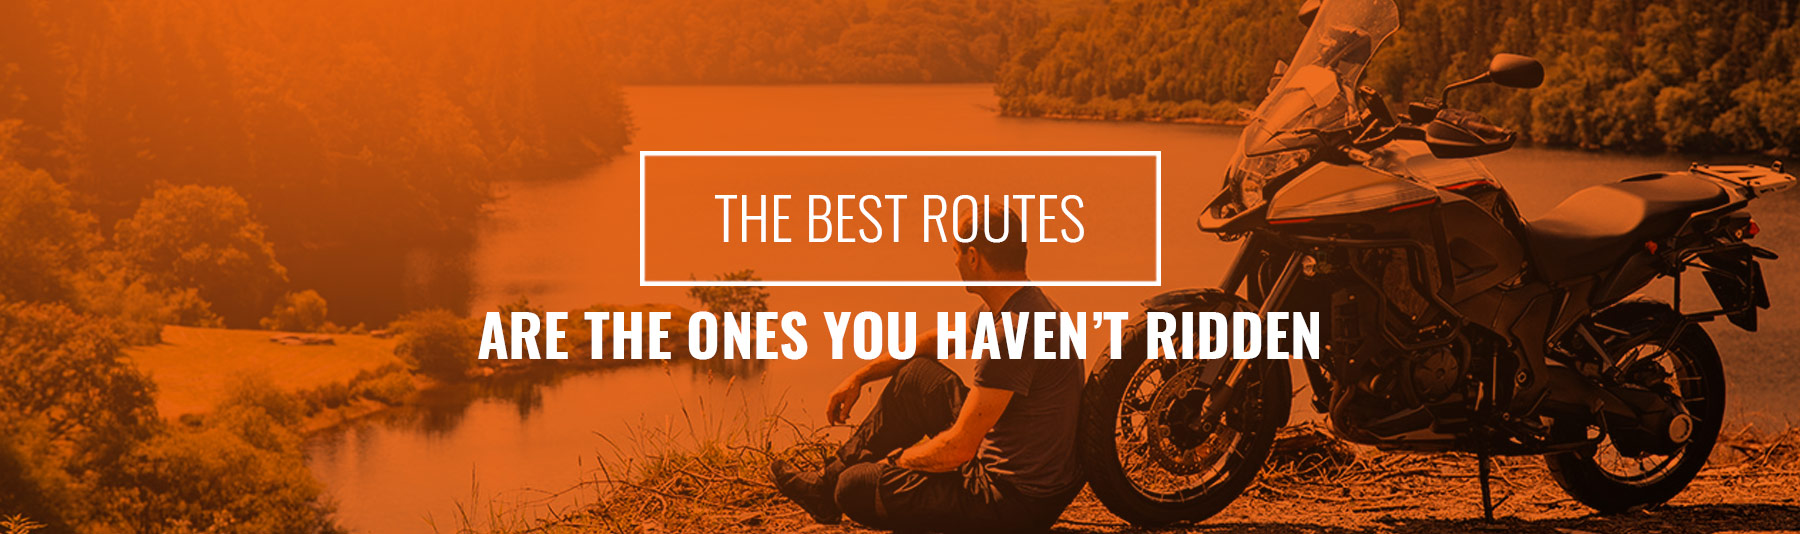 The-Best-Routes-Are-The-Ones-You-Havent-Ridden-Twisted-Trails